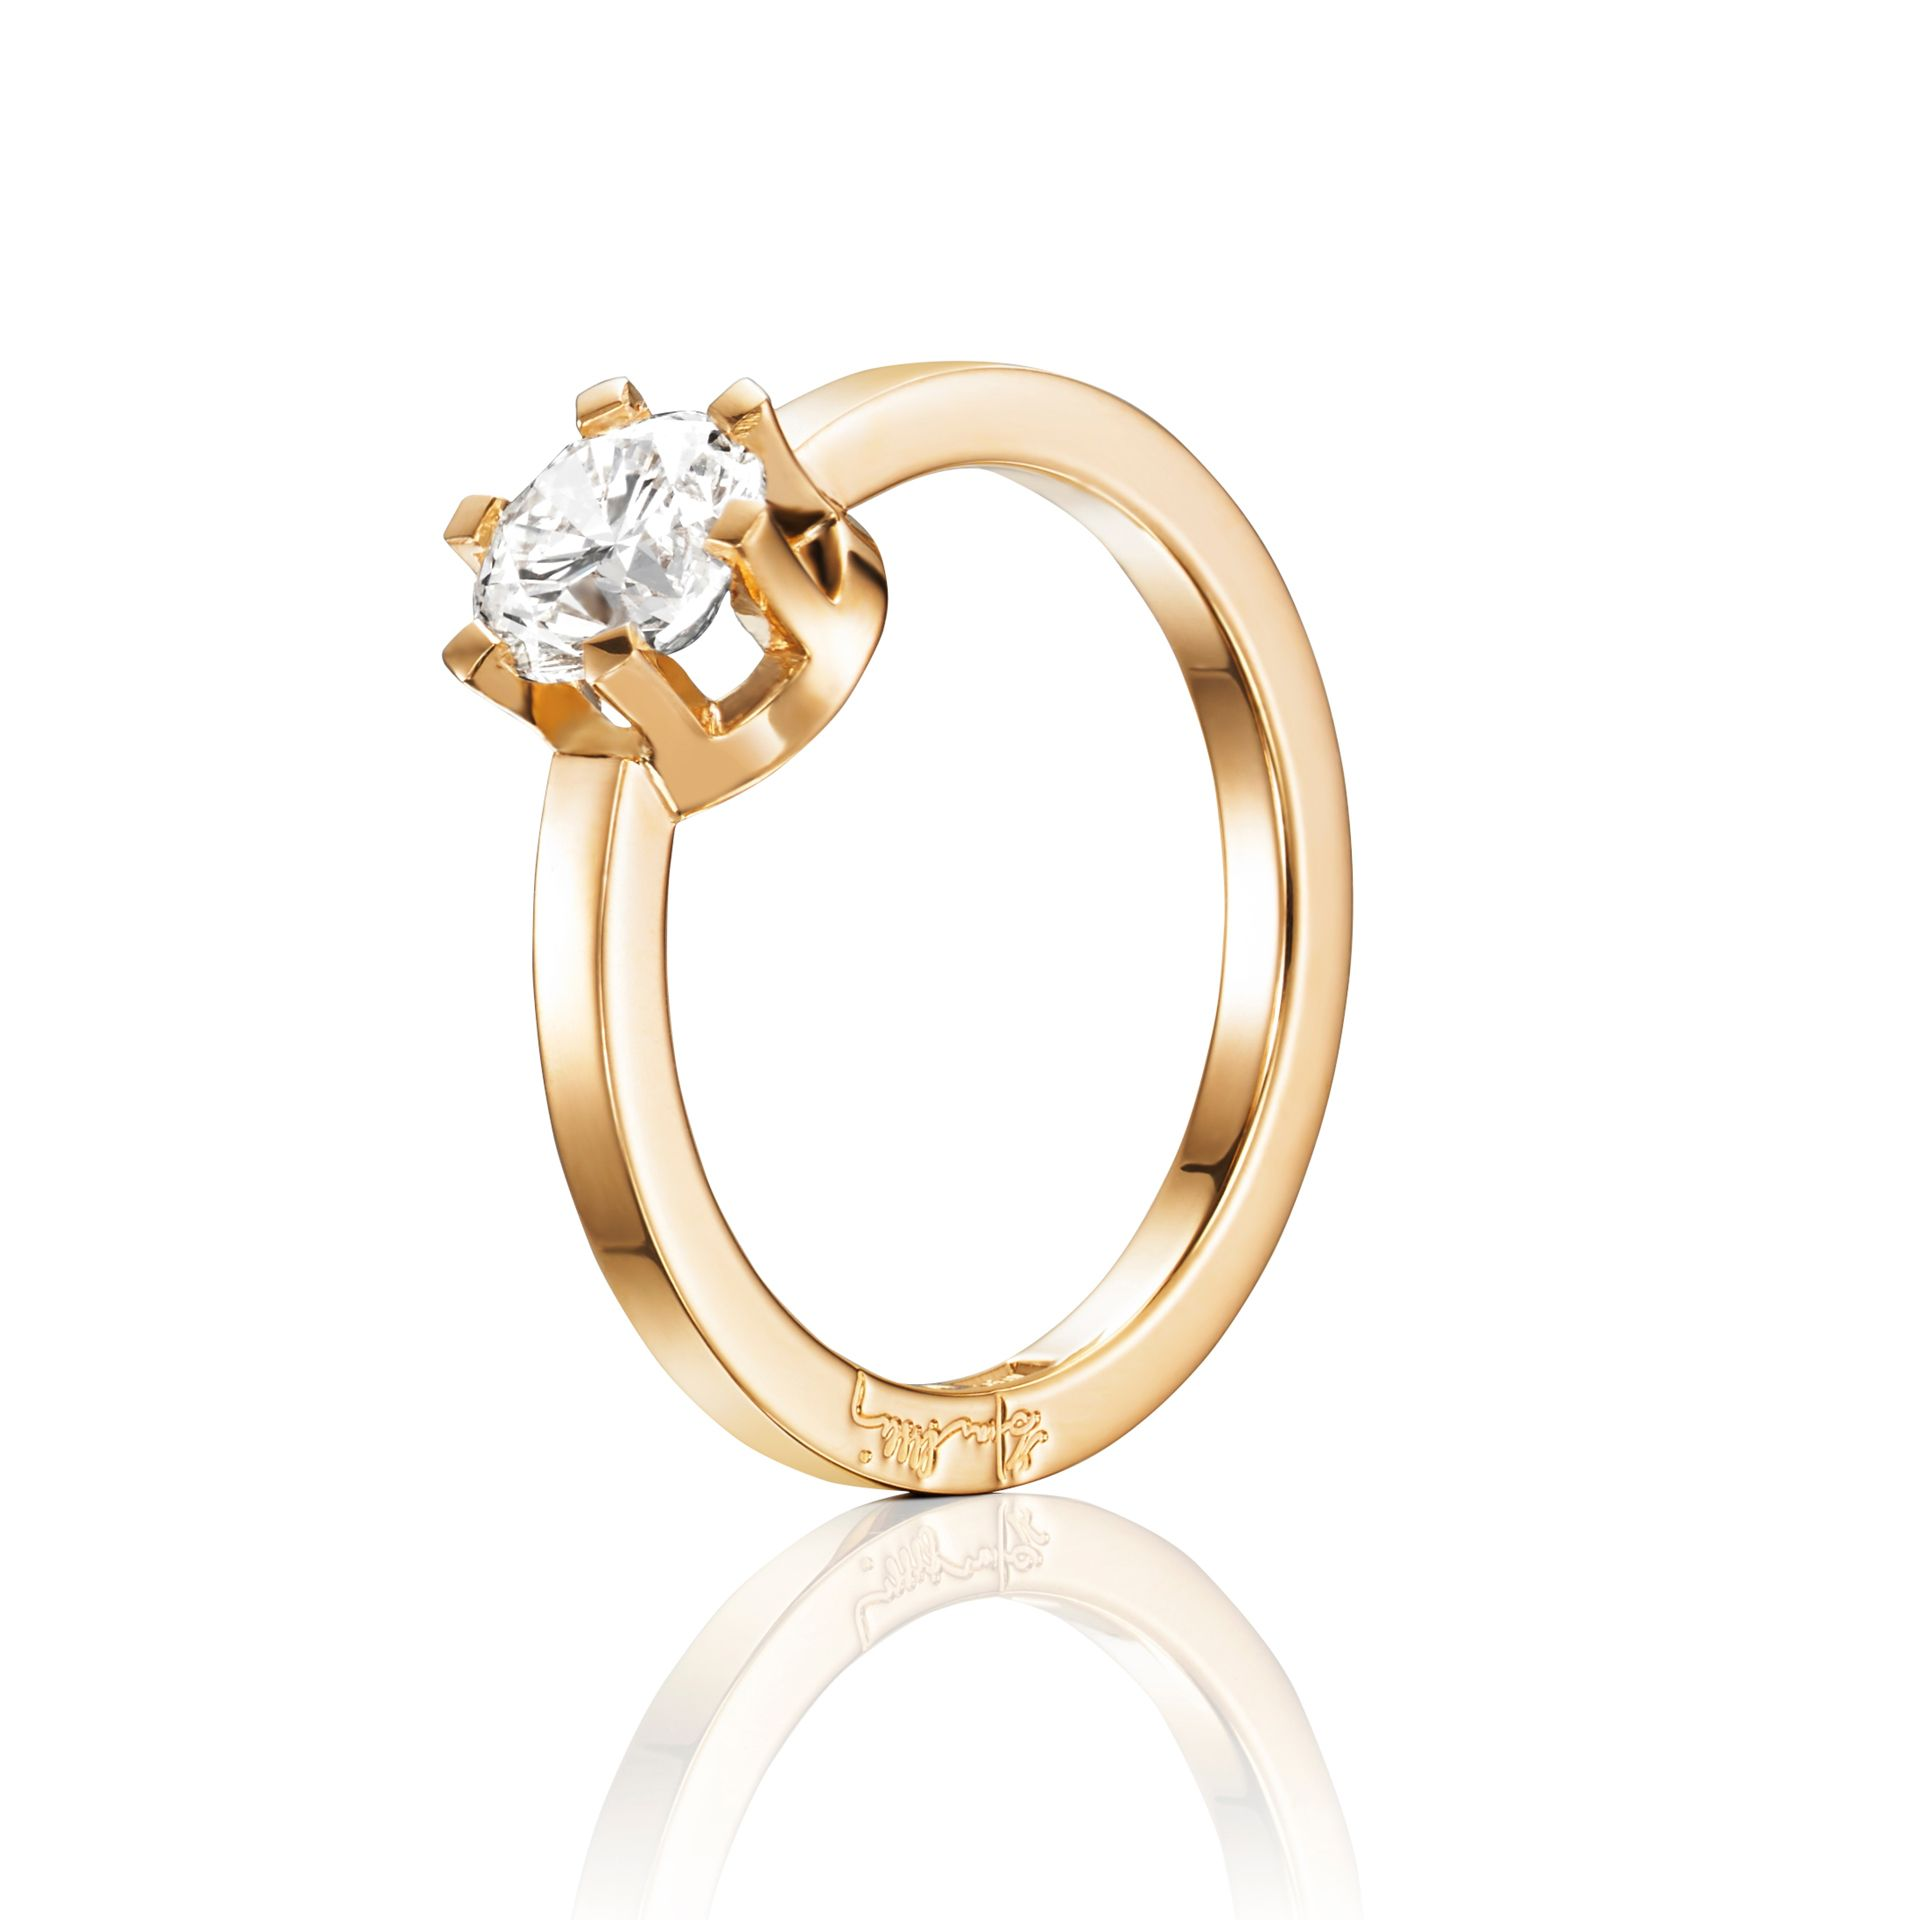 Efva Attling -Crown Wedding Ring 1.0 Ct Ringar Guld